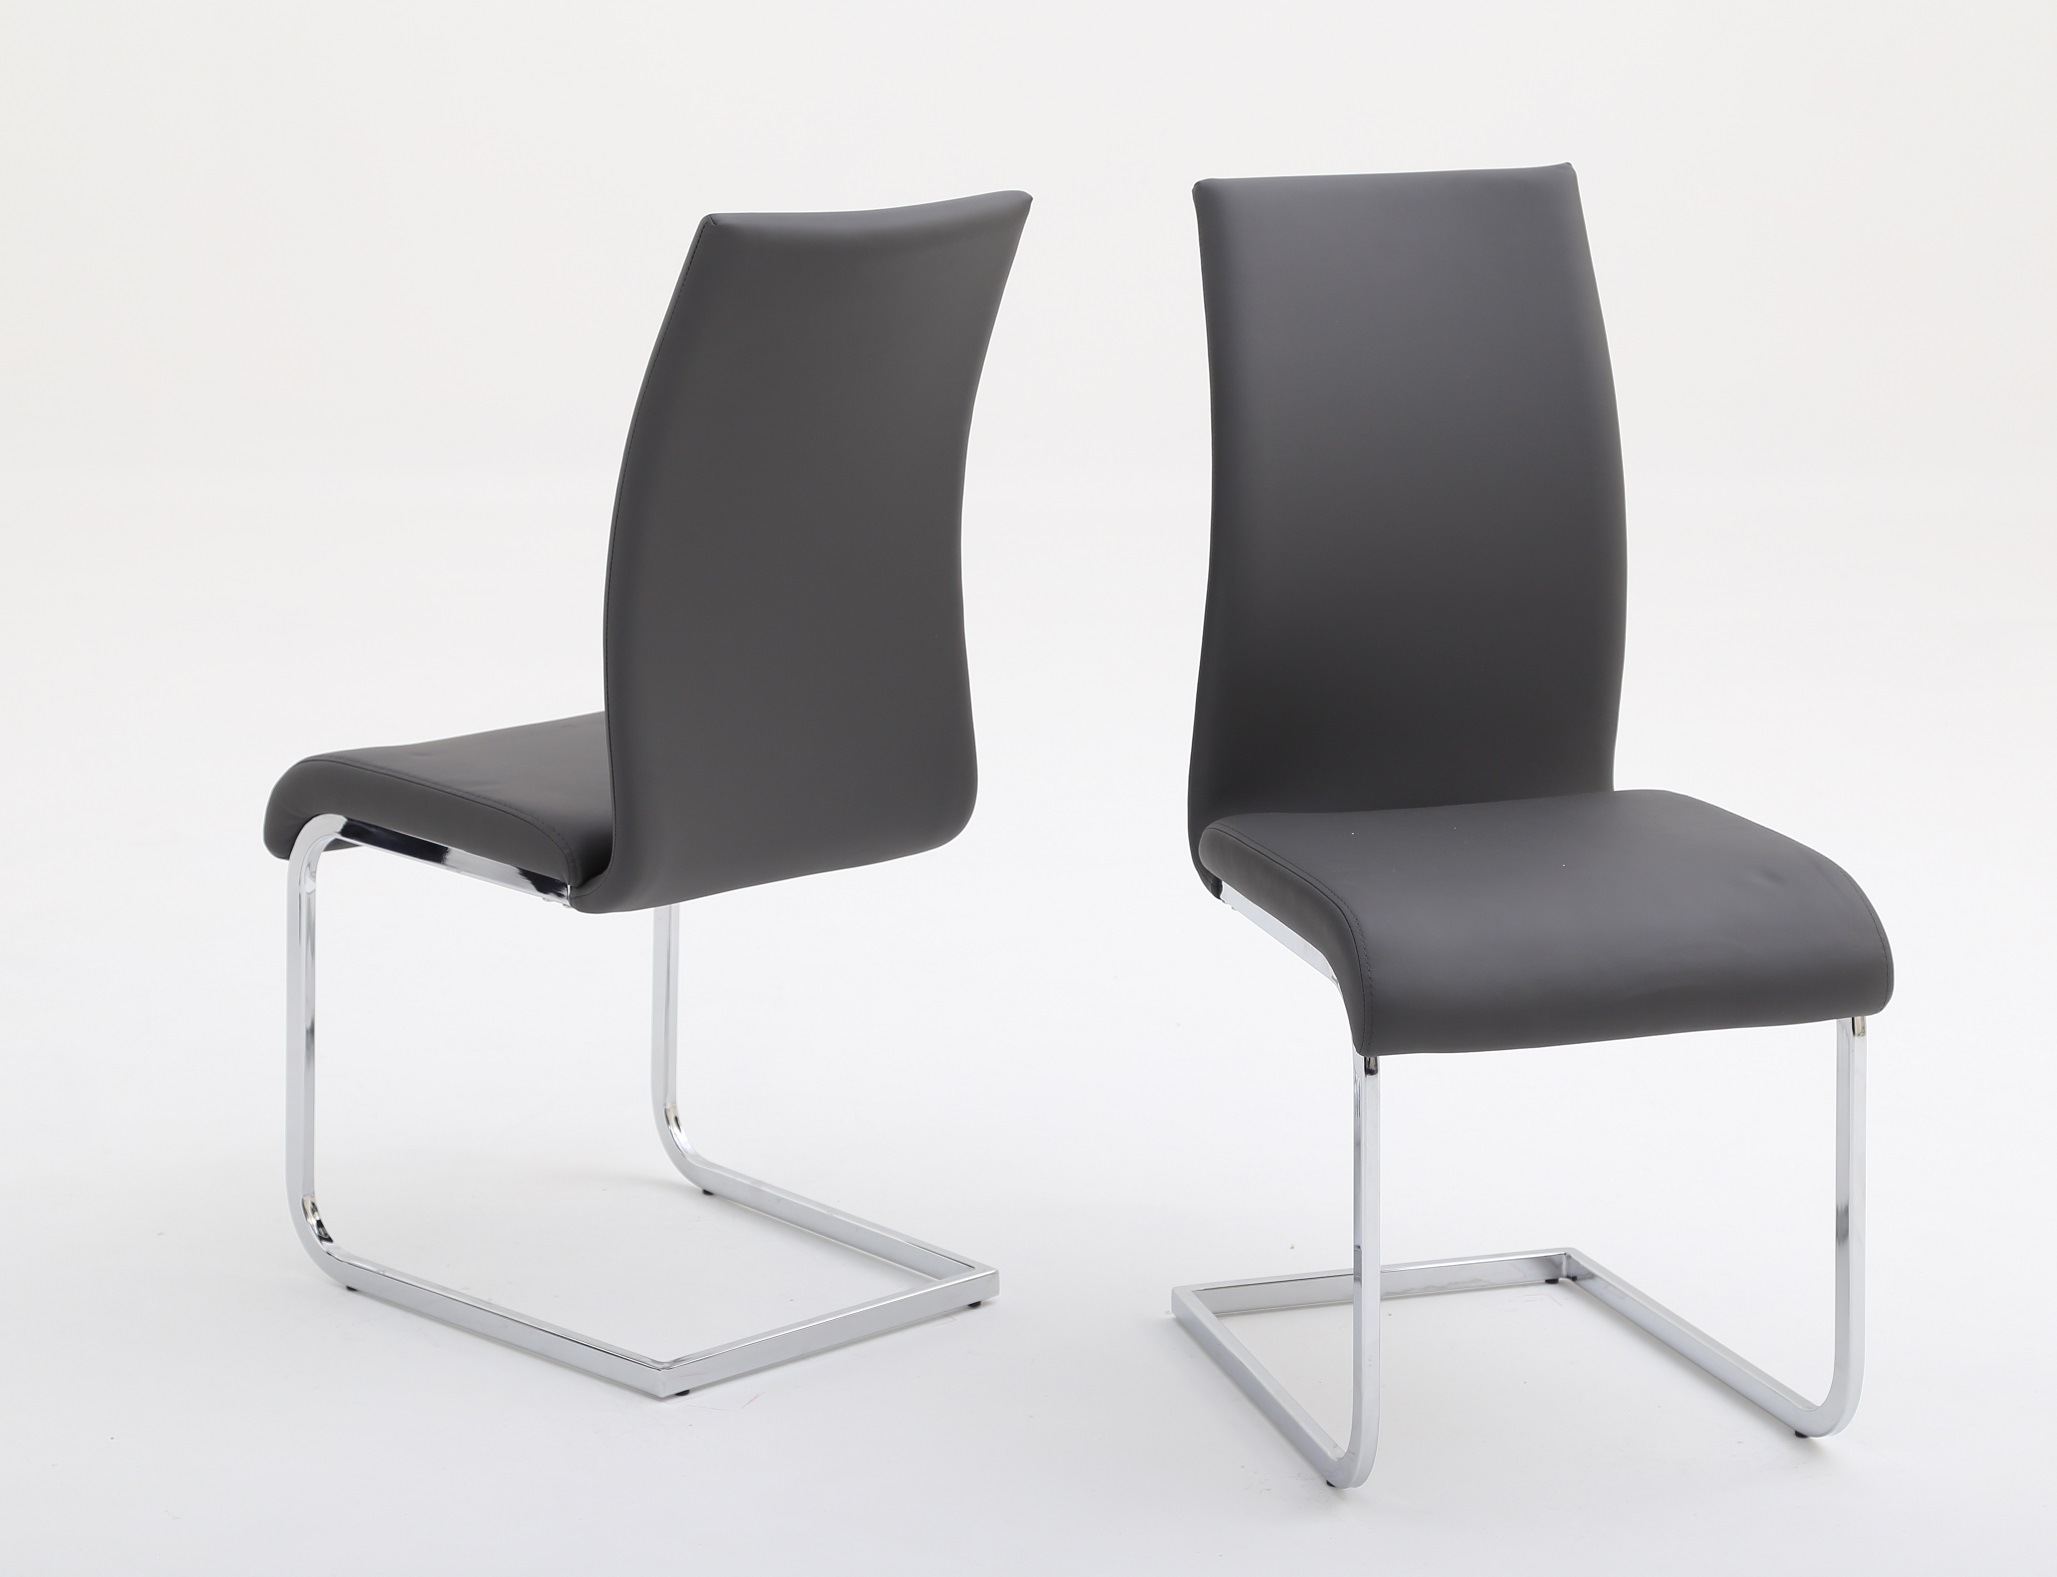 https://www.firstfurniture.co.uk/pub/media/catalog/product/p/a/paolo_chair_grey.jpg